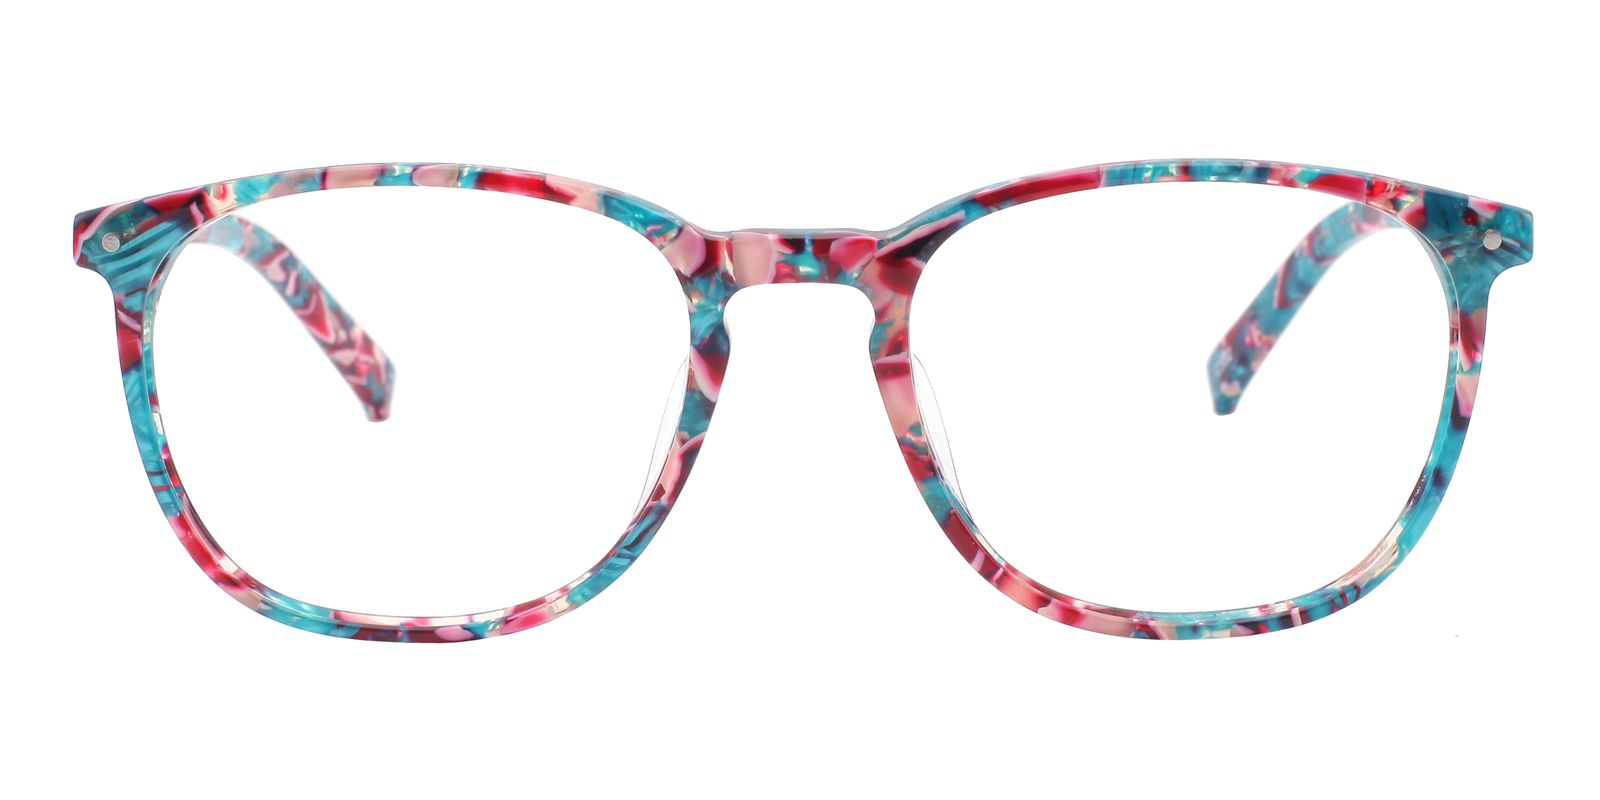 Prescription Glasses, Buy Eyeglasses Frames Online - GlassesShop ...